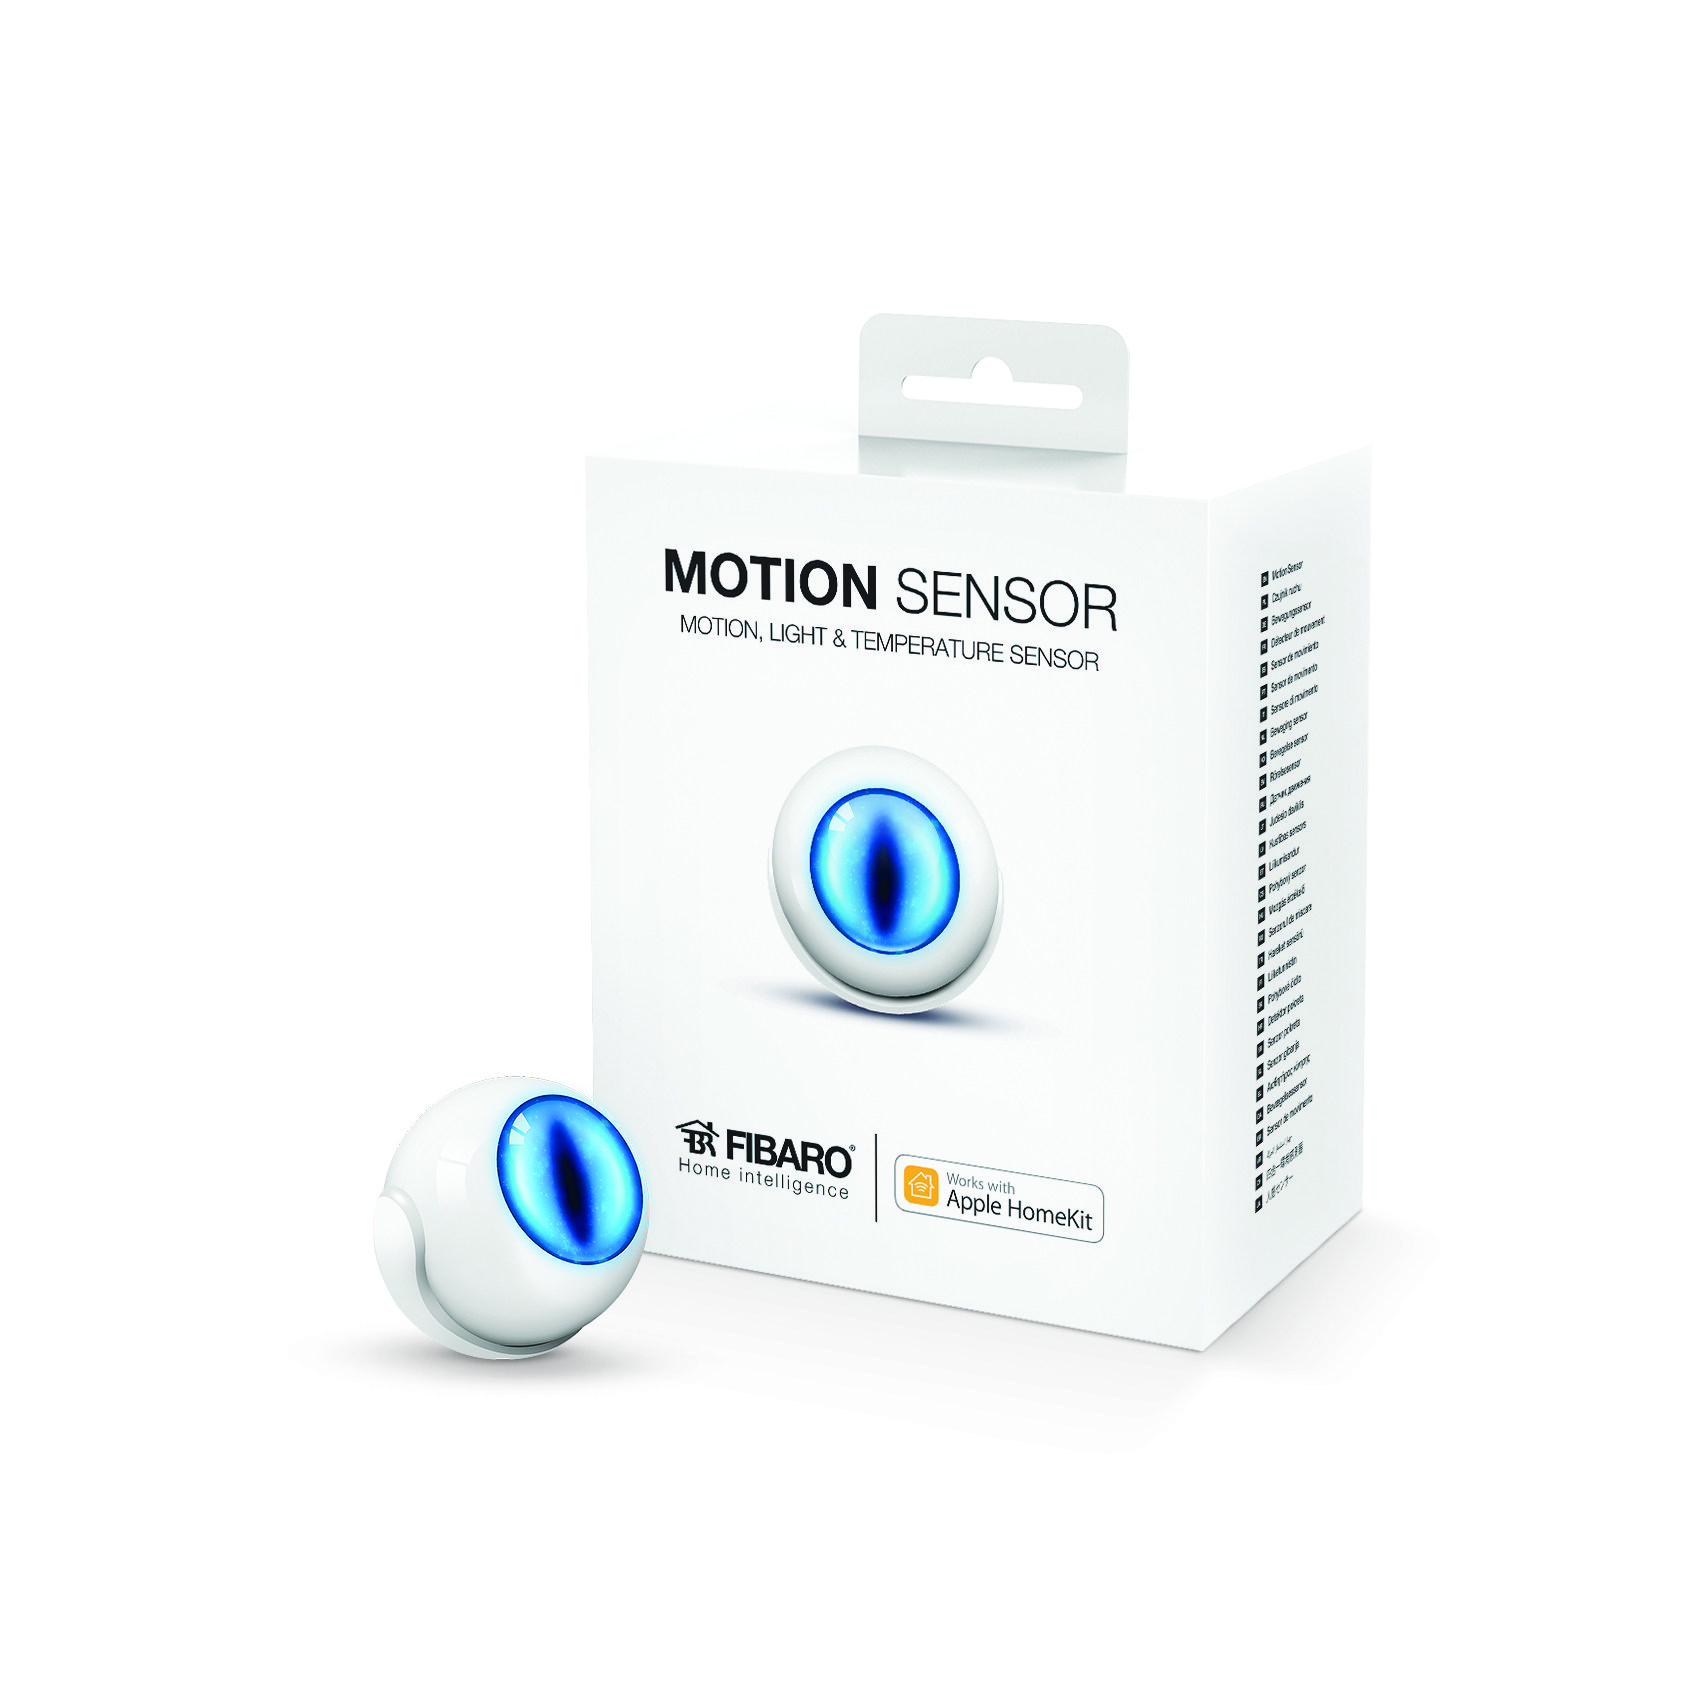 fibaro-homekit-motion-sensor-right.jpg